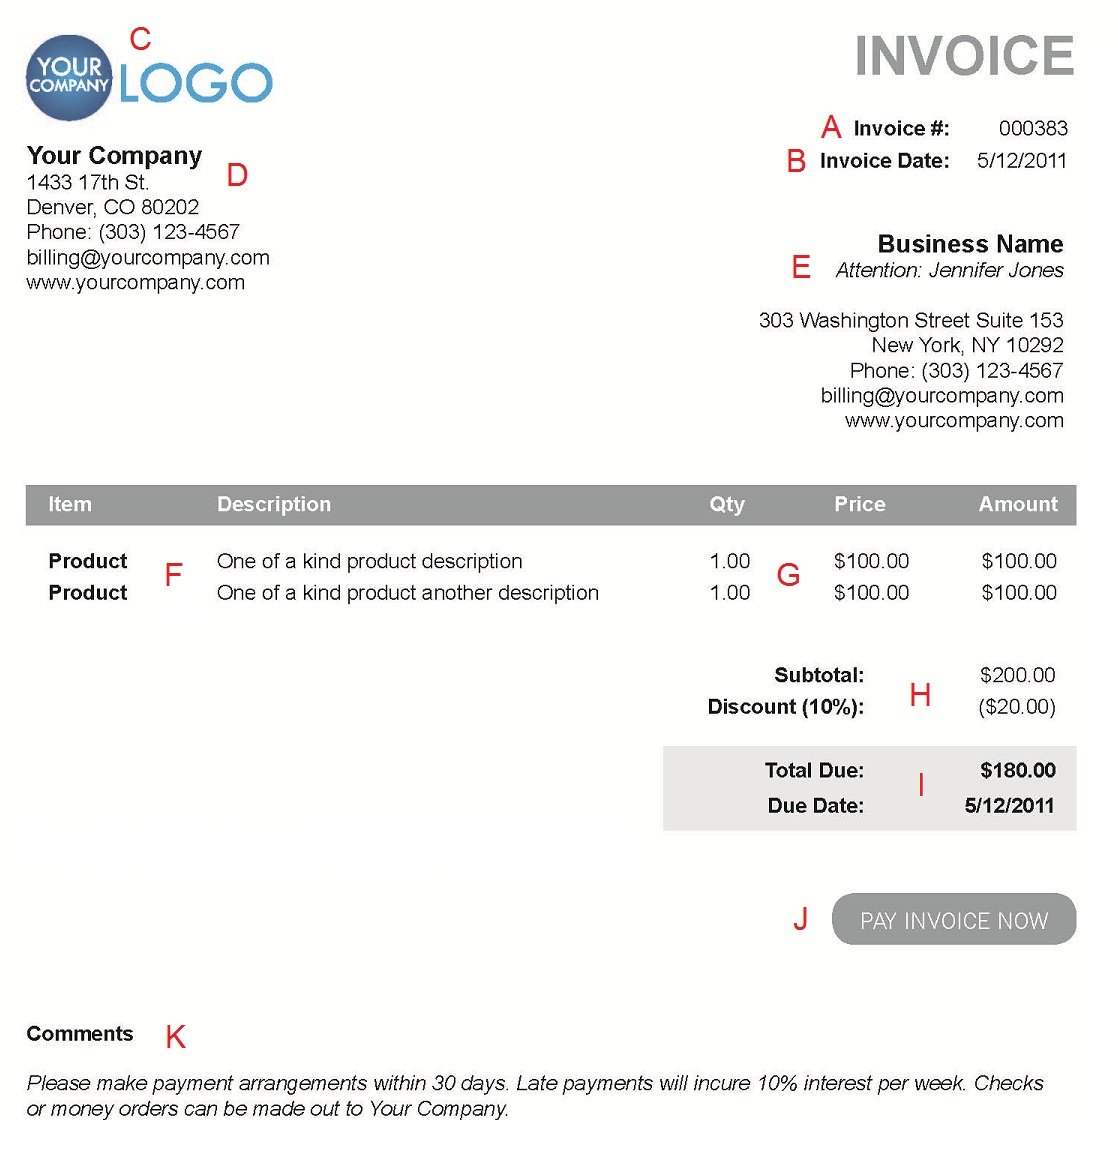 Carsforlessus  Wonderful The  Different Sections Of An Electronic Payment Invoice With Marvelous A  With Awesome Model Invoice Template Also Ups Proforma Invoice In Addition Invoice Vs Sticker Price And Top Invoice Software As Well As Invoice Expert Review Additionally How To Write An Invoice Template From Paysimplecom With Carsforlessus  Marvelous The  Different Sections Of An Electronic Payment Invoice With Awesome A  And Wonderful Model Invoice Template Also Ups Proforma Invoice In Addition Invoice Vs Sticker Price From Paysimplecom